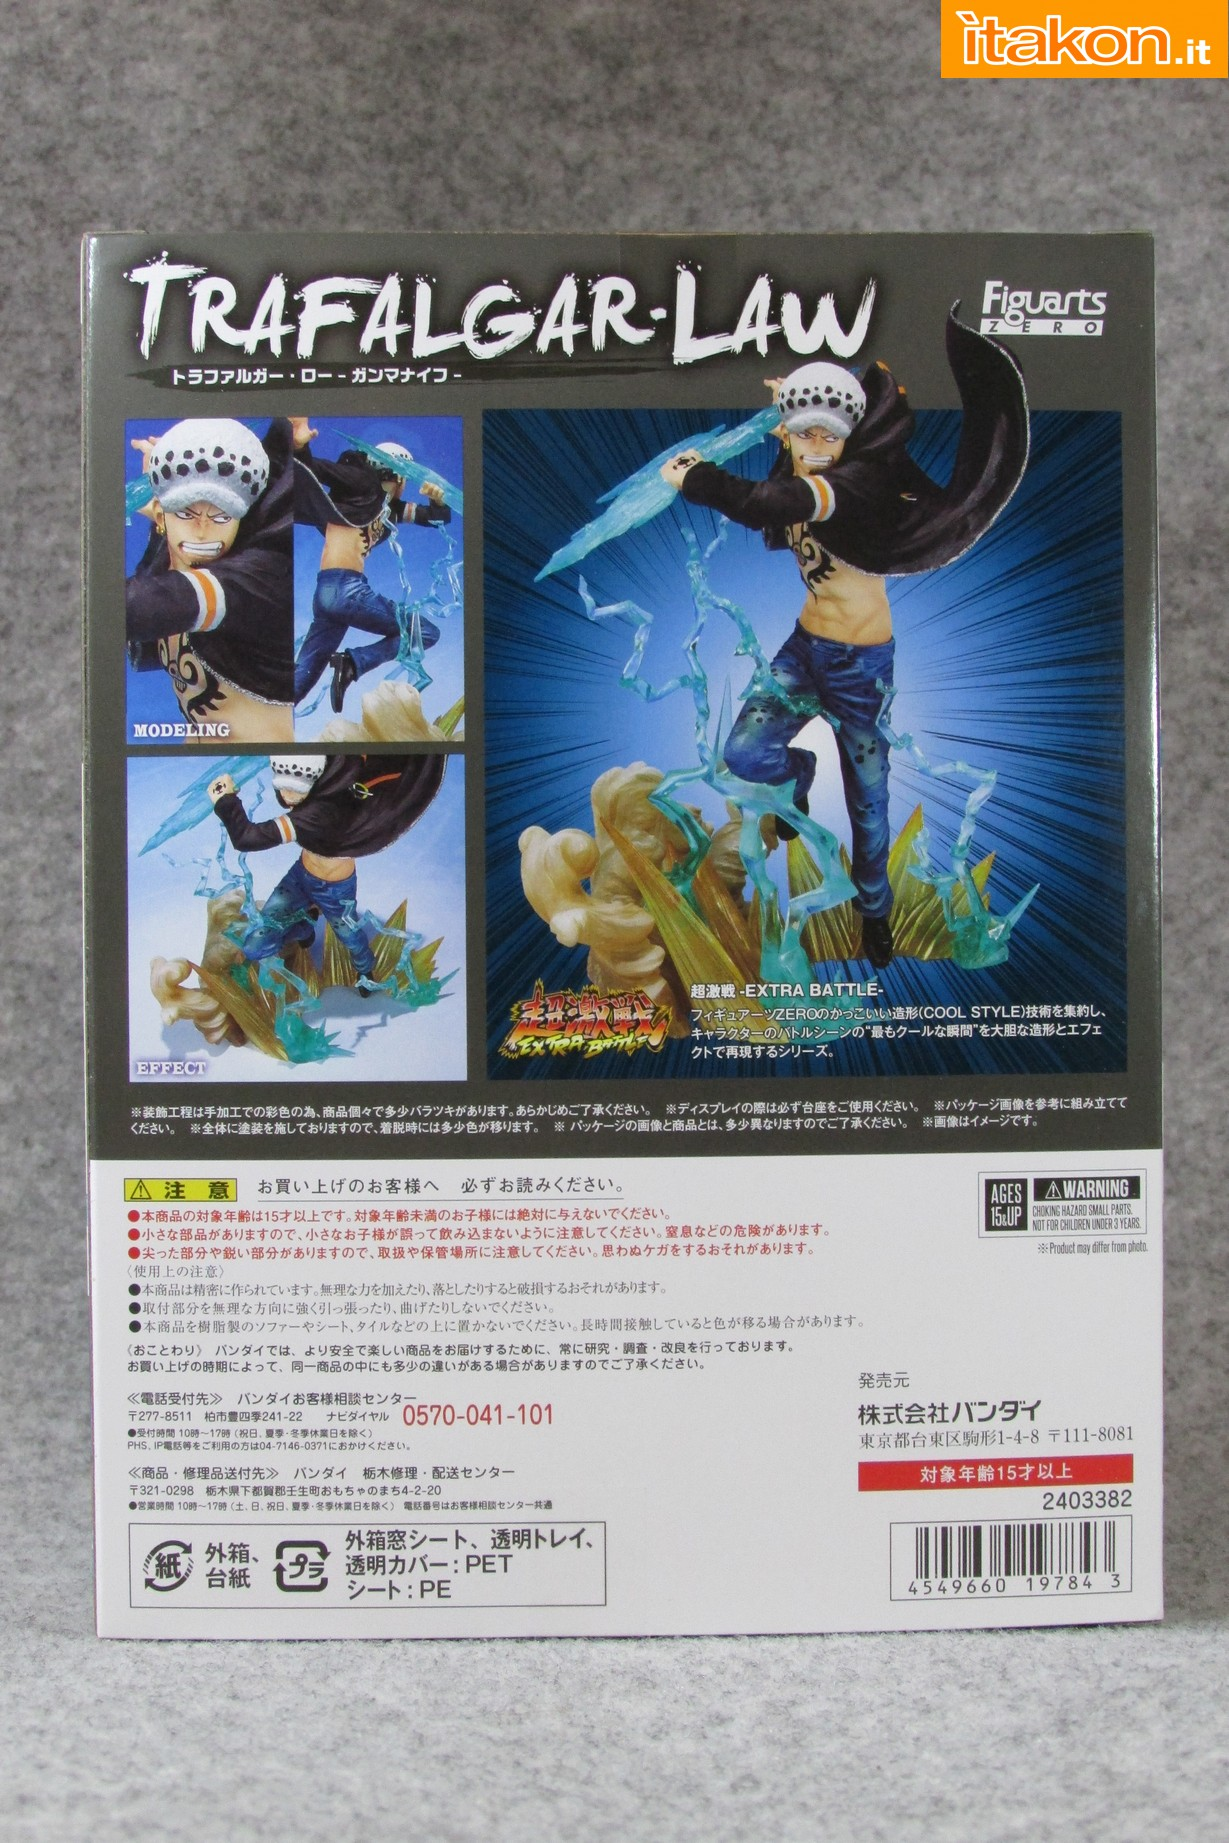 Link a One Piece Trafalgar Law Gamma Knife Figuarts ZERO Chou Gekisen Extra Battle Recensione Review Itakon.it 04